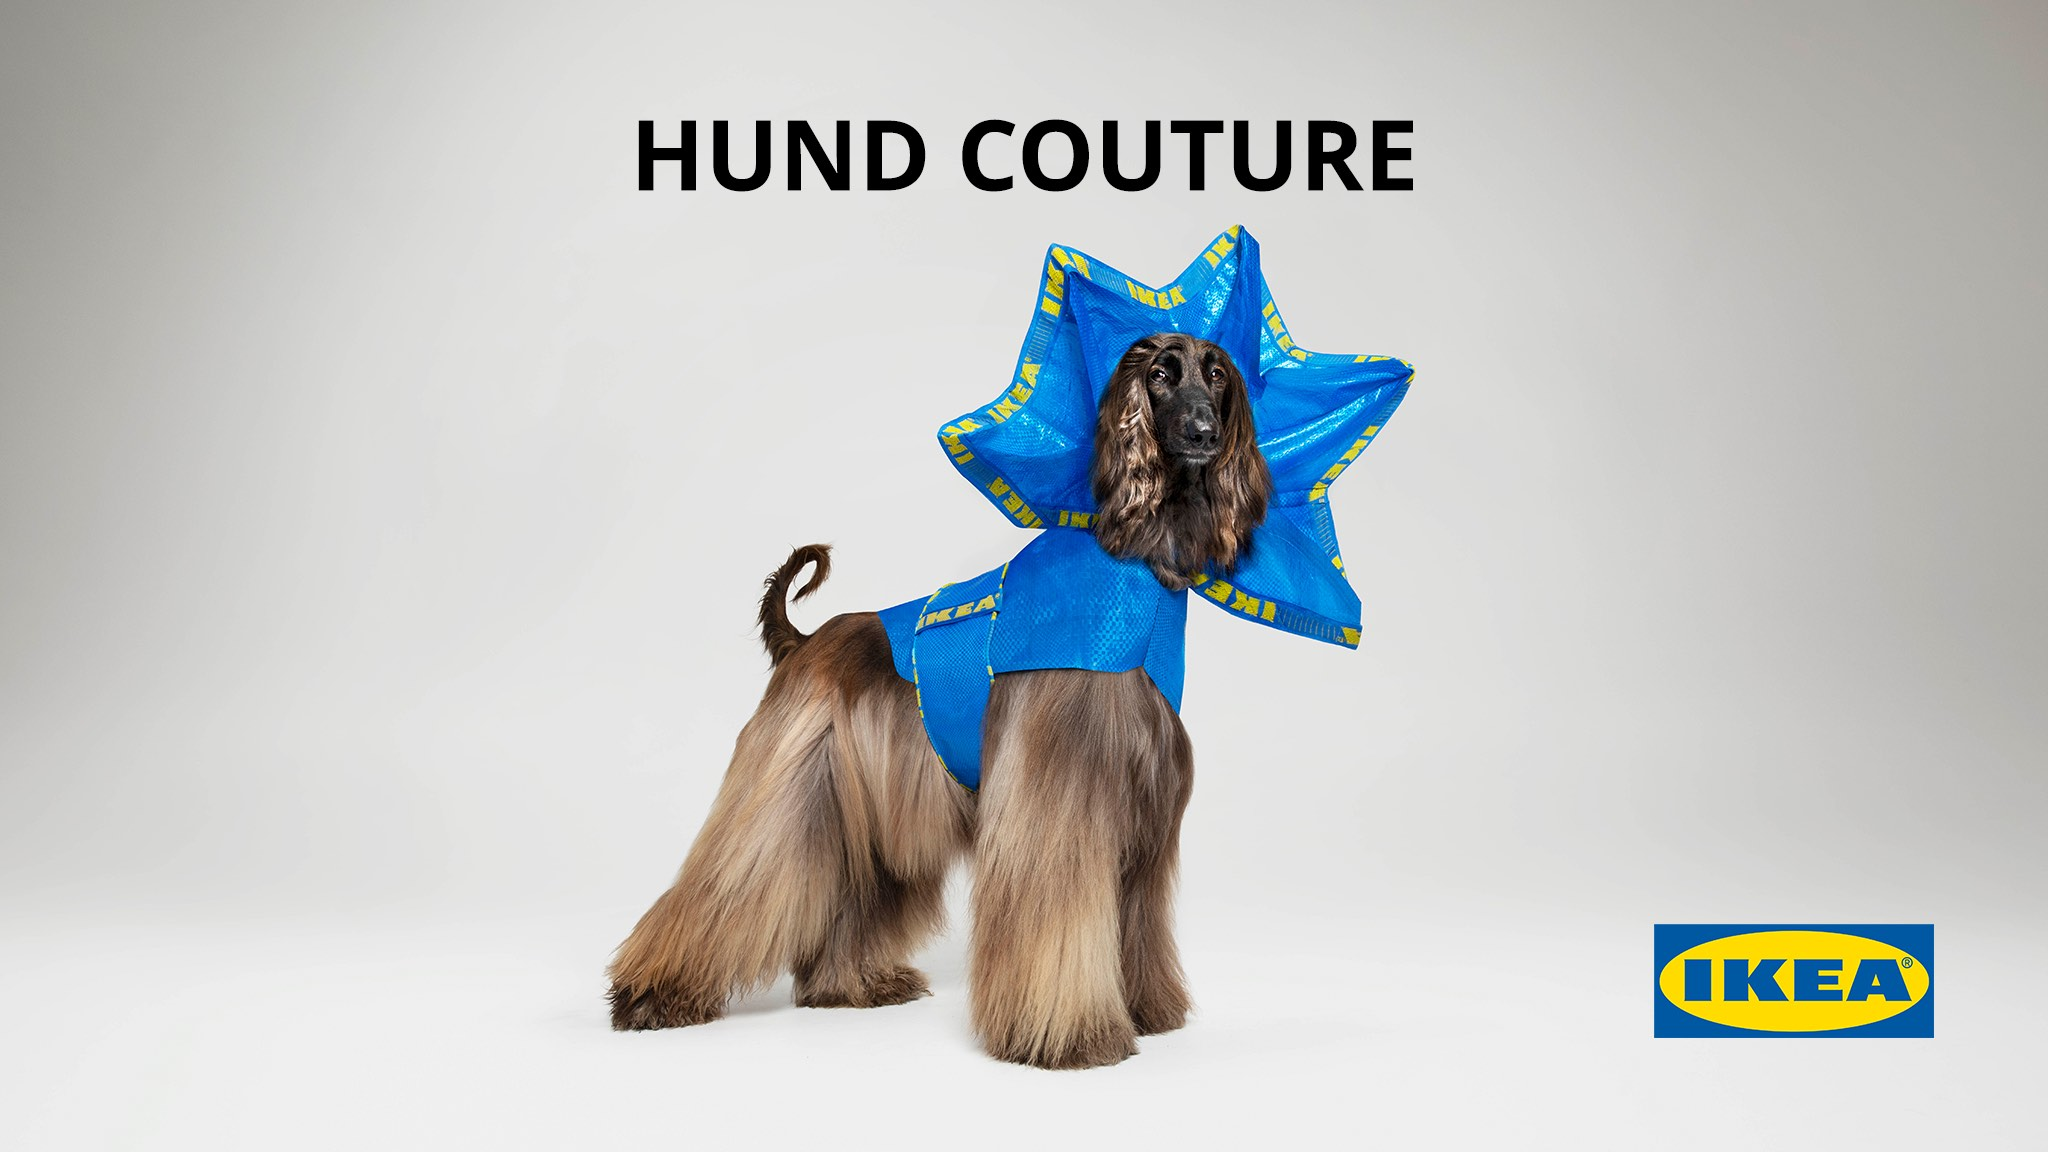 IKEA launches HUND COUTURE for dogs in April Fools' Day campaign via CHE Proximity